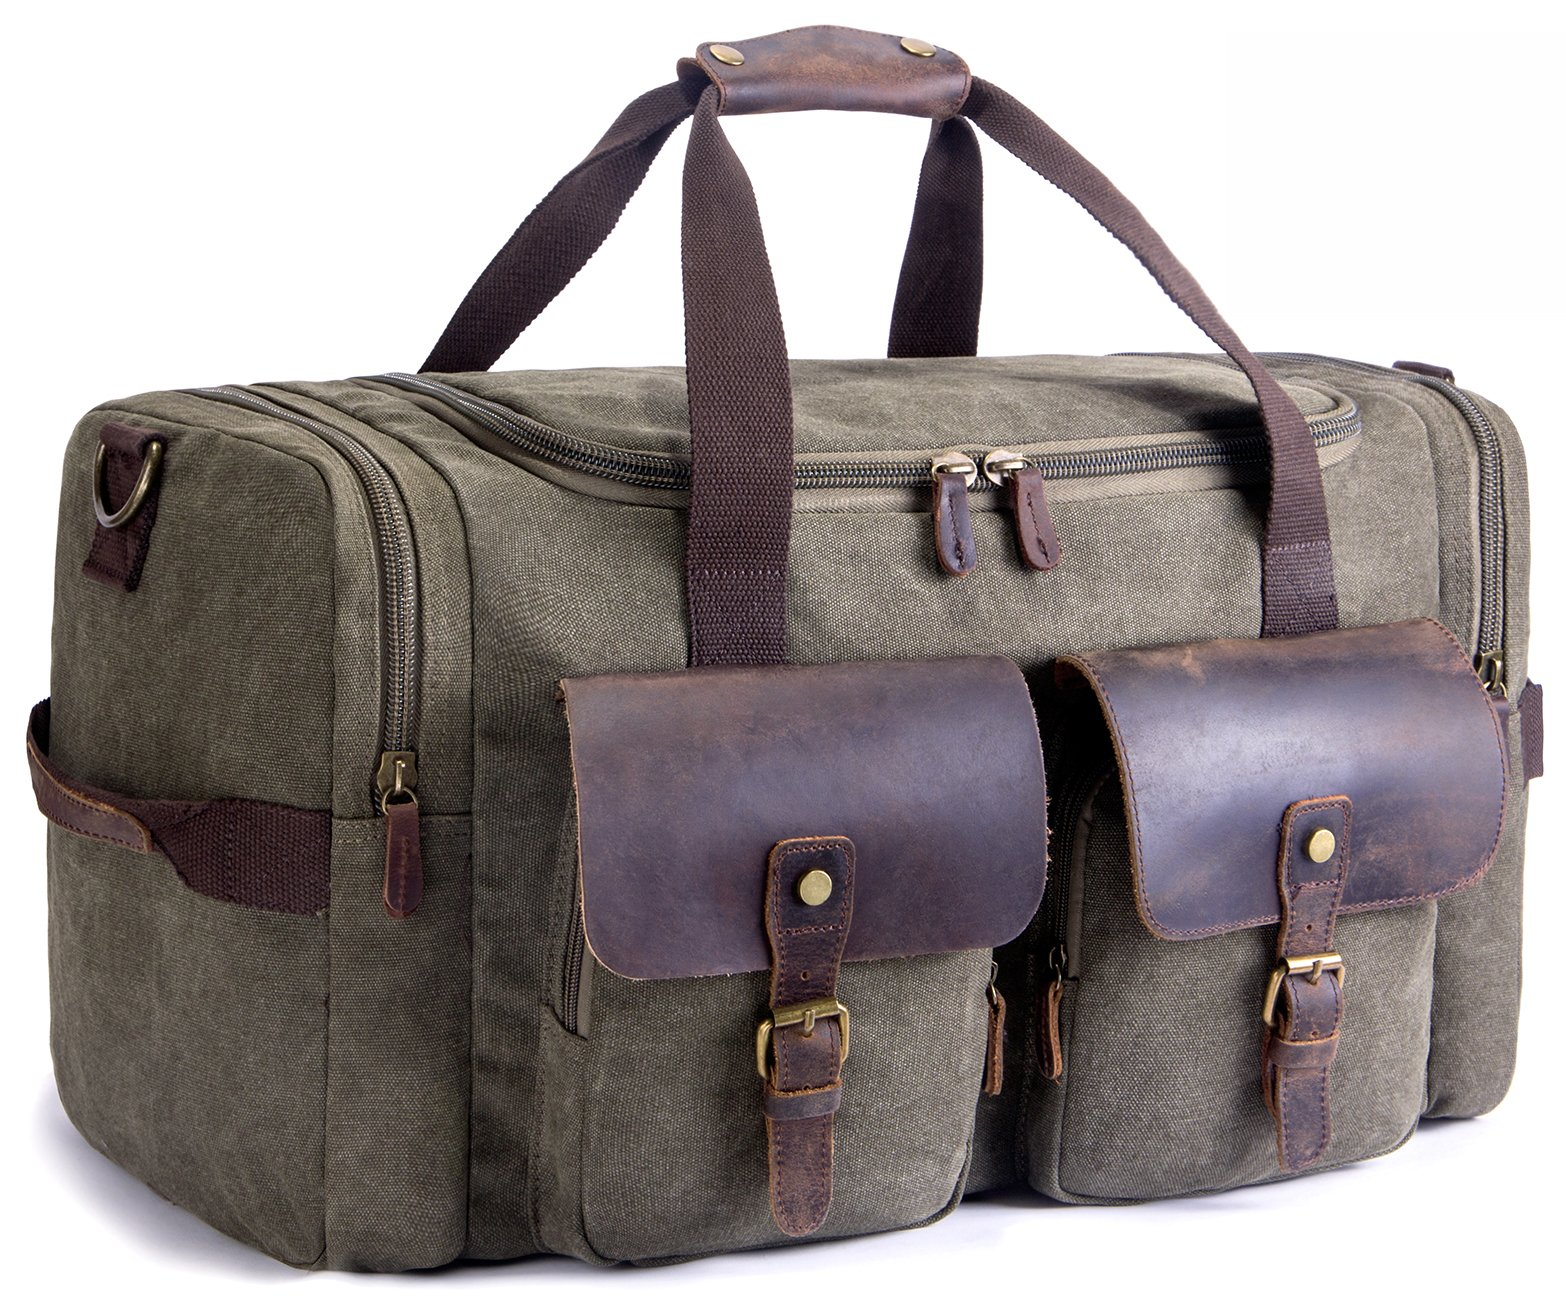 SUVOM Canvas Duffle Bag Leather Weekend Bag Carry On Travel Bag Luggage Oversized Holdalls for Men and Women(Army Green) by SUVOM (Image #1)